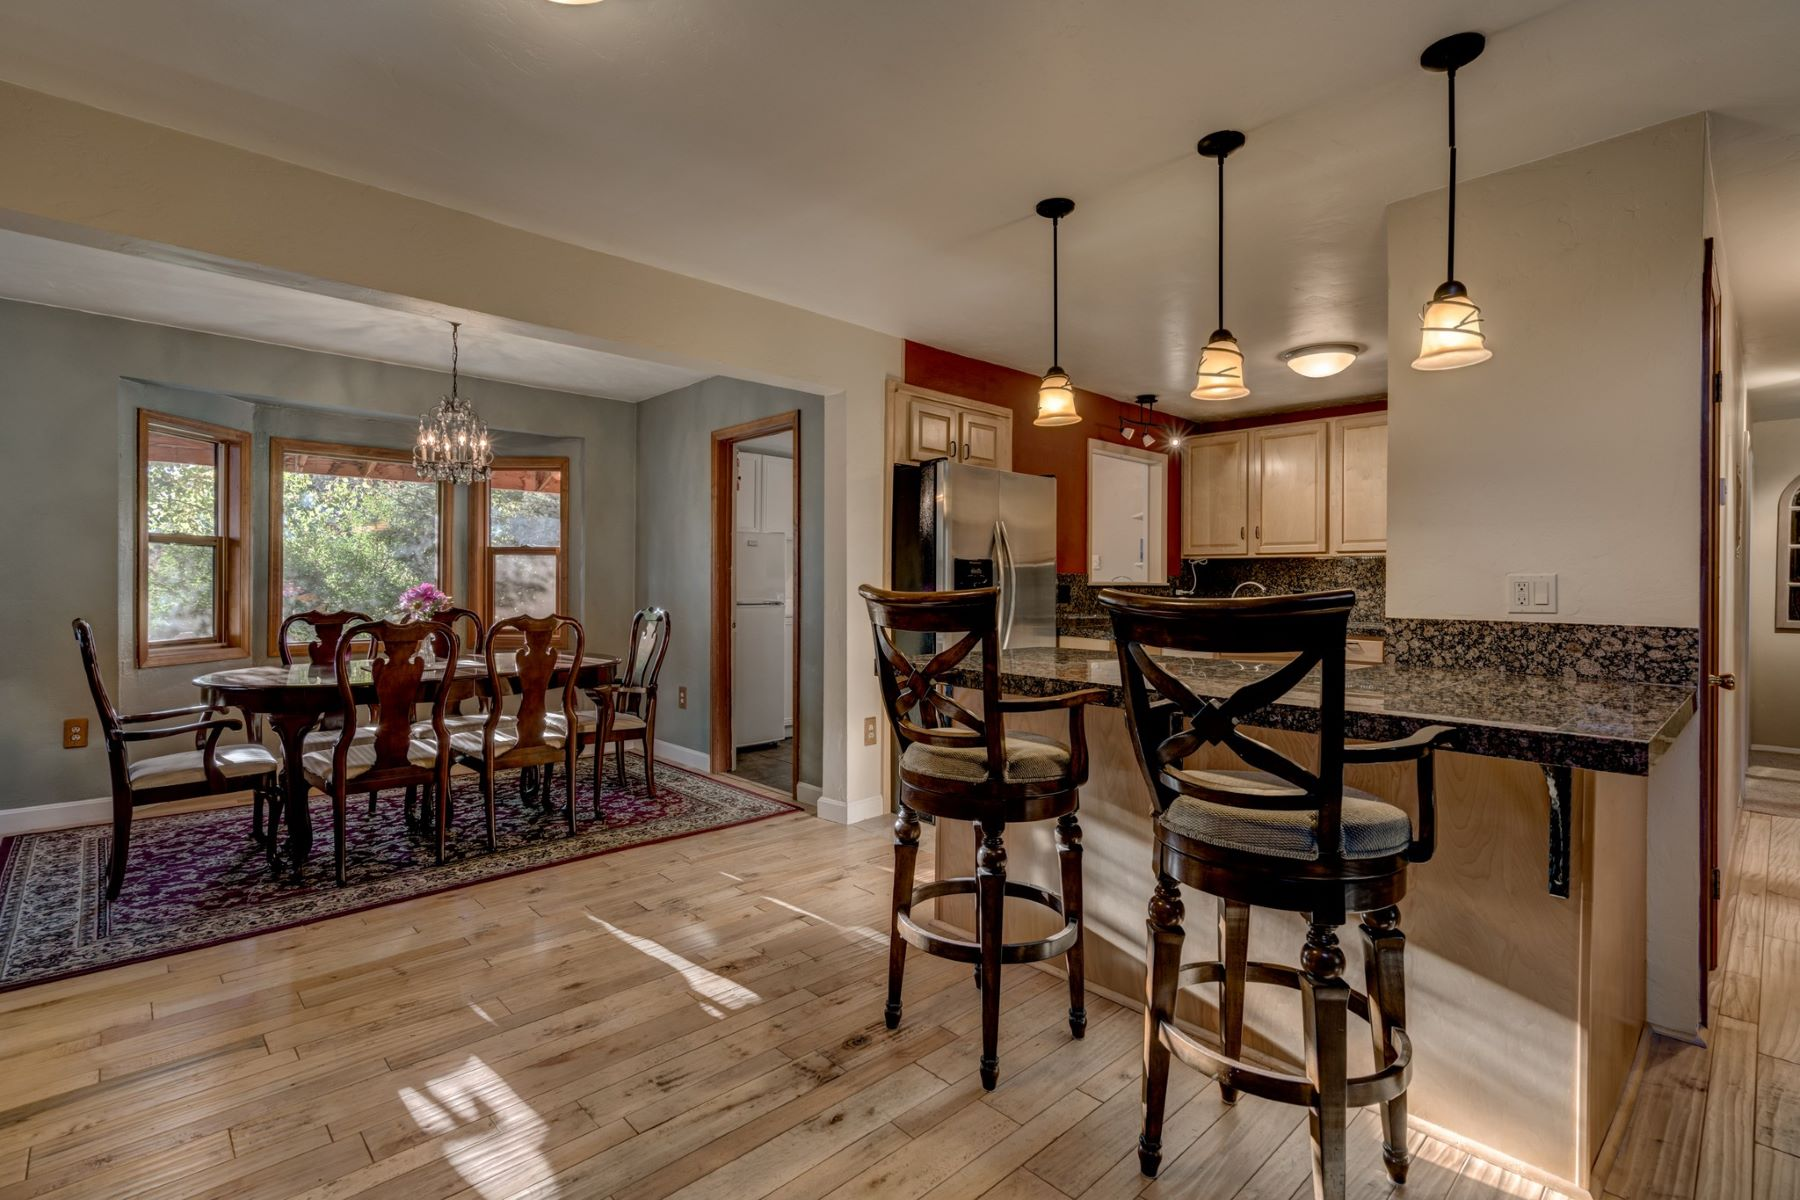 Single Family Home for Sale at Riverside Home 2577 Riverside Dr. Steamboat Springs, Colorado 80487 United States